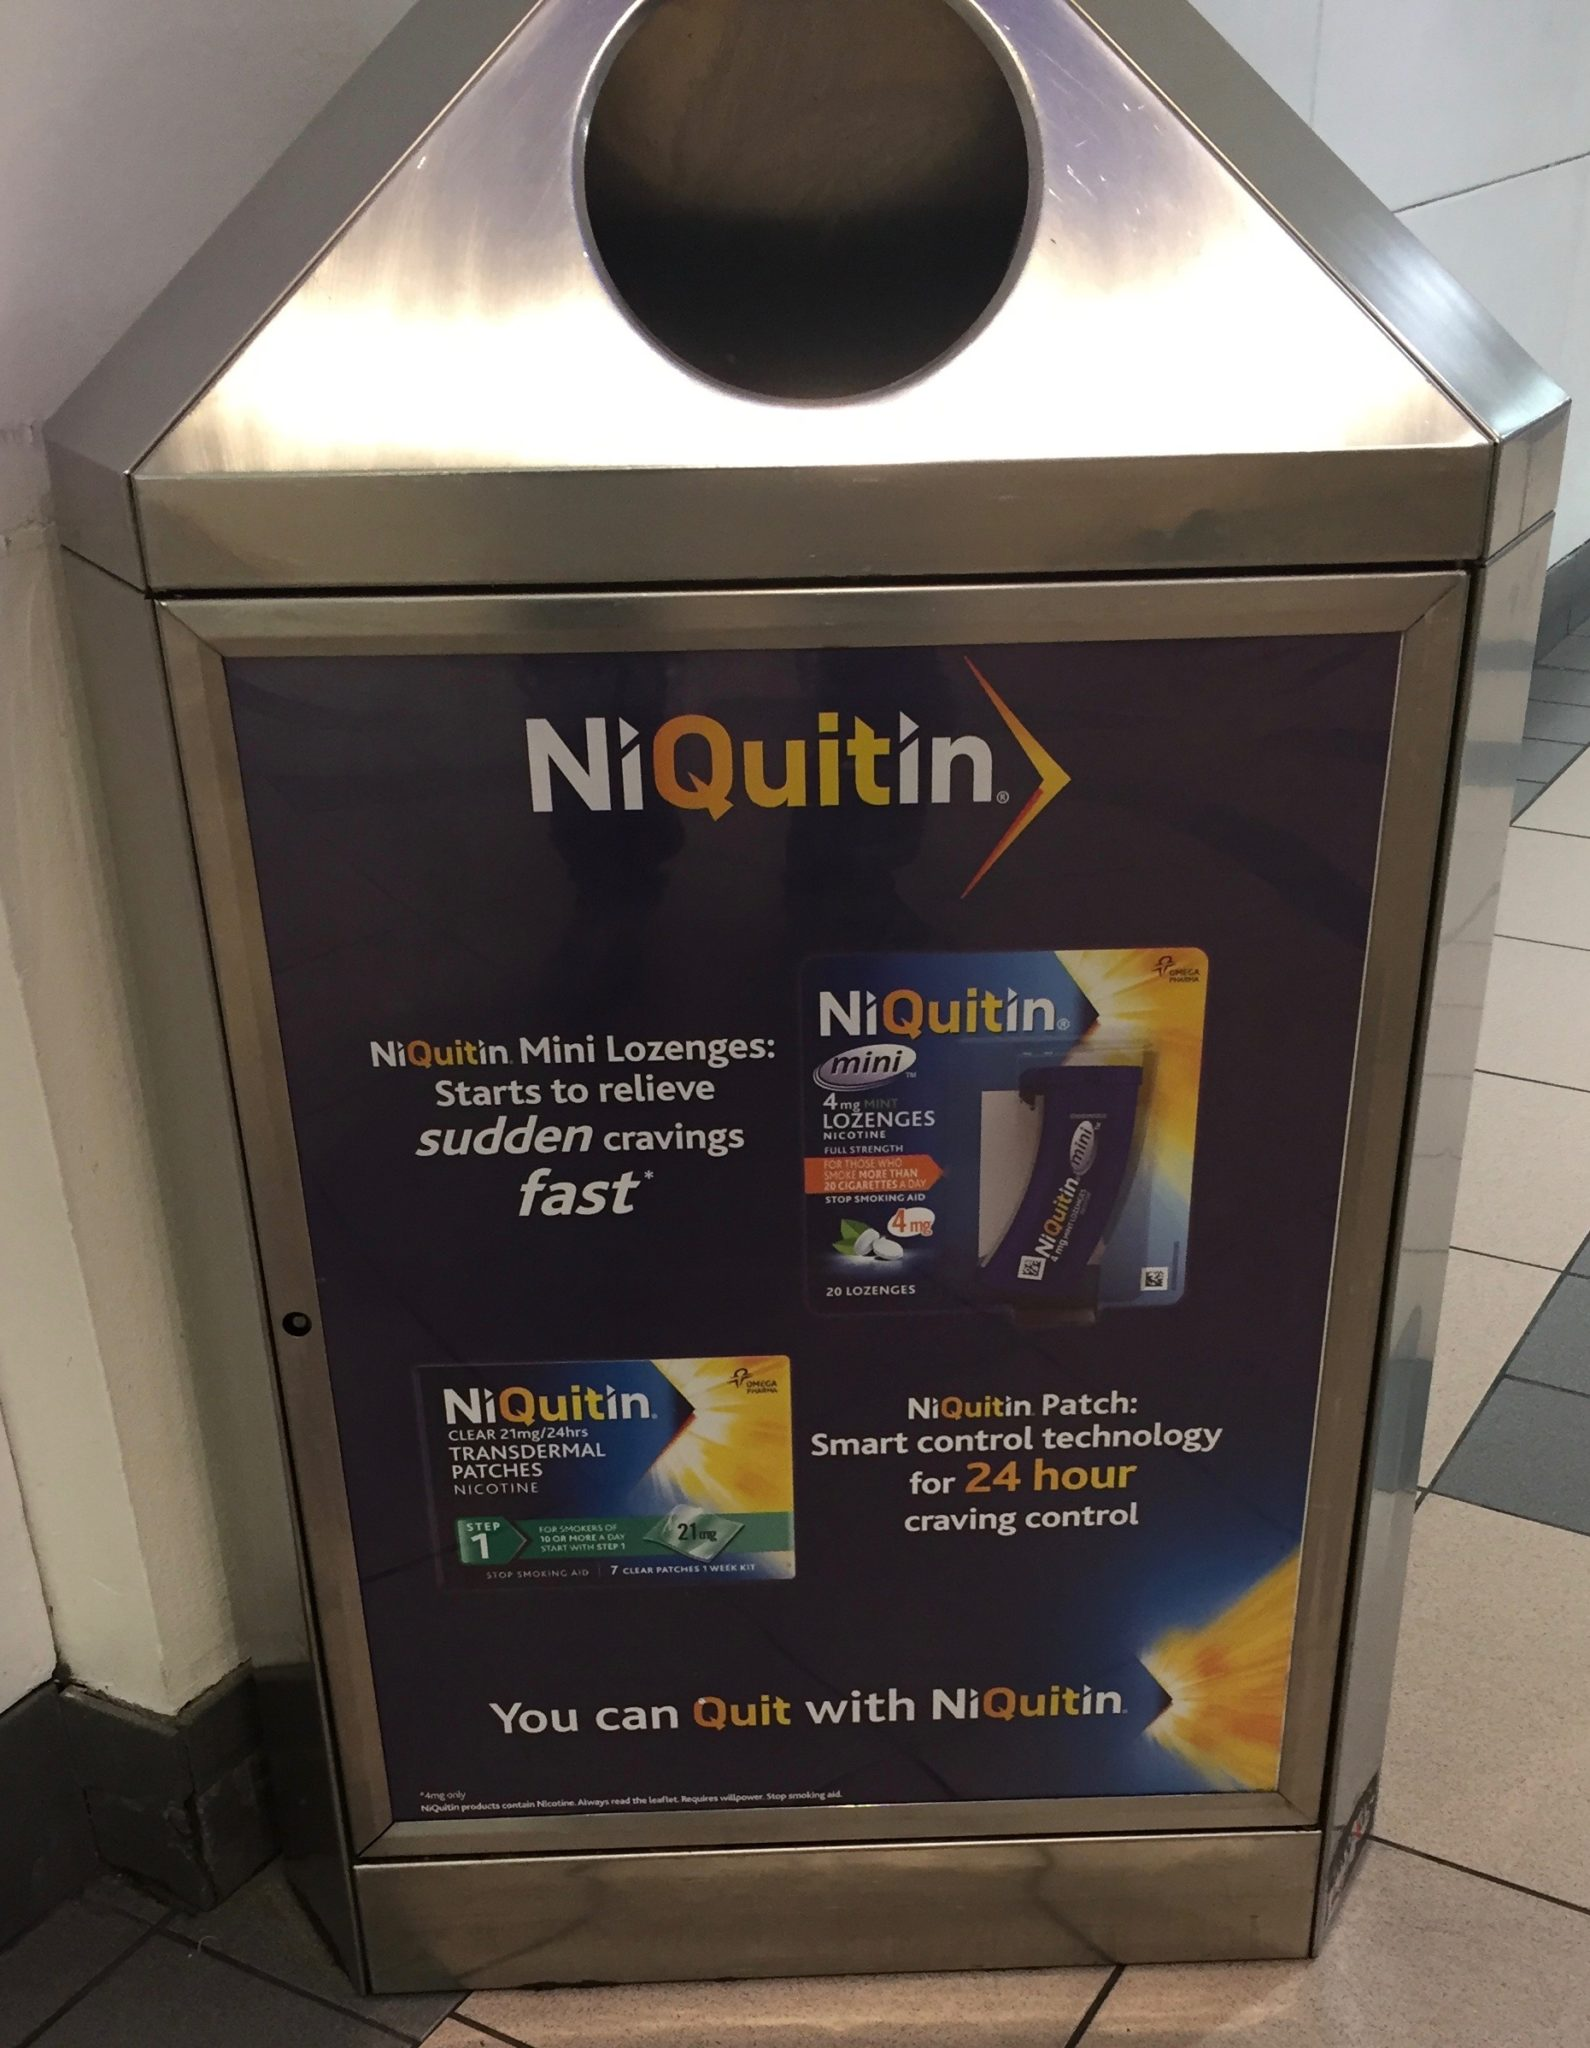 Niquitin – you can quit with niquitin